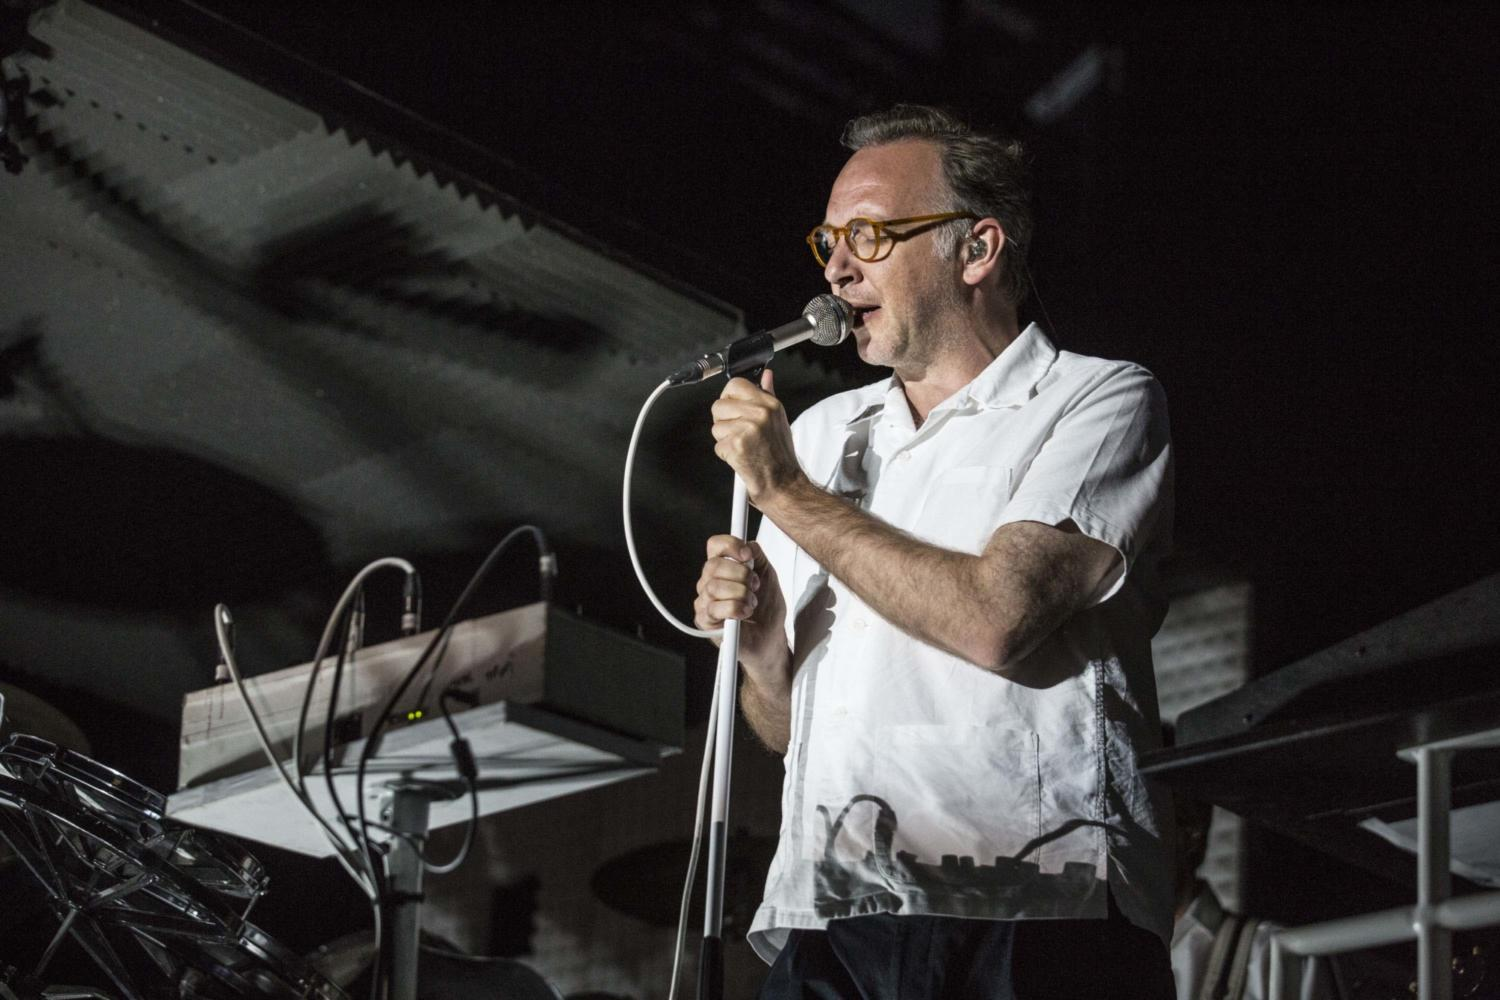 Soulwax to replace Justice at Bestival